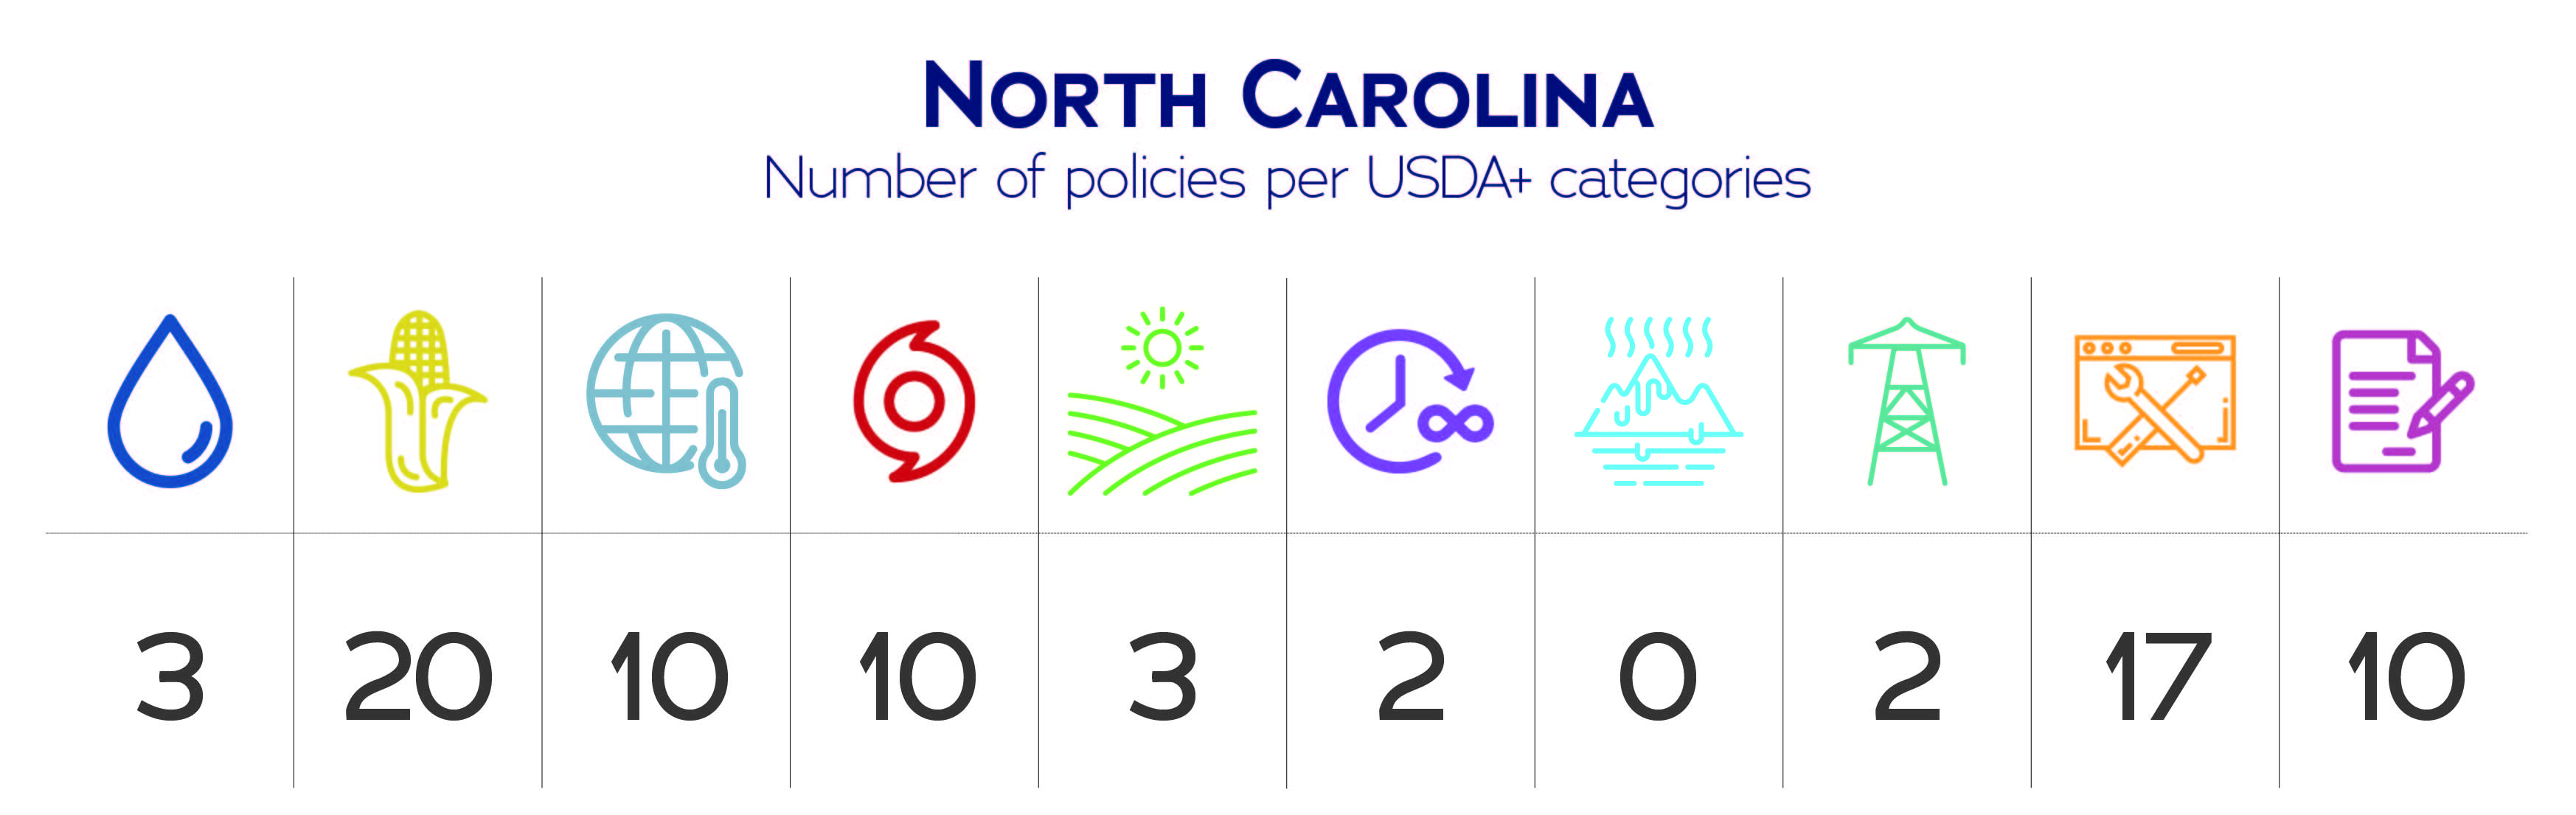 North Carolina USDA+ category data